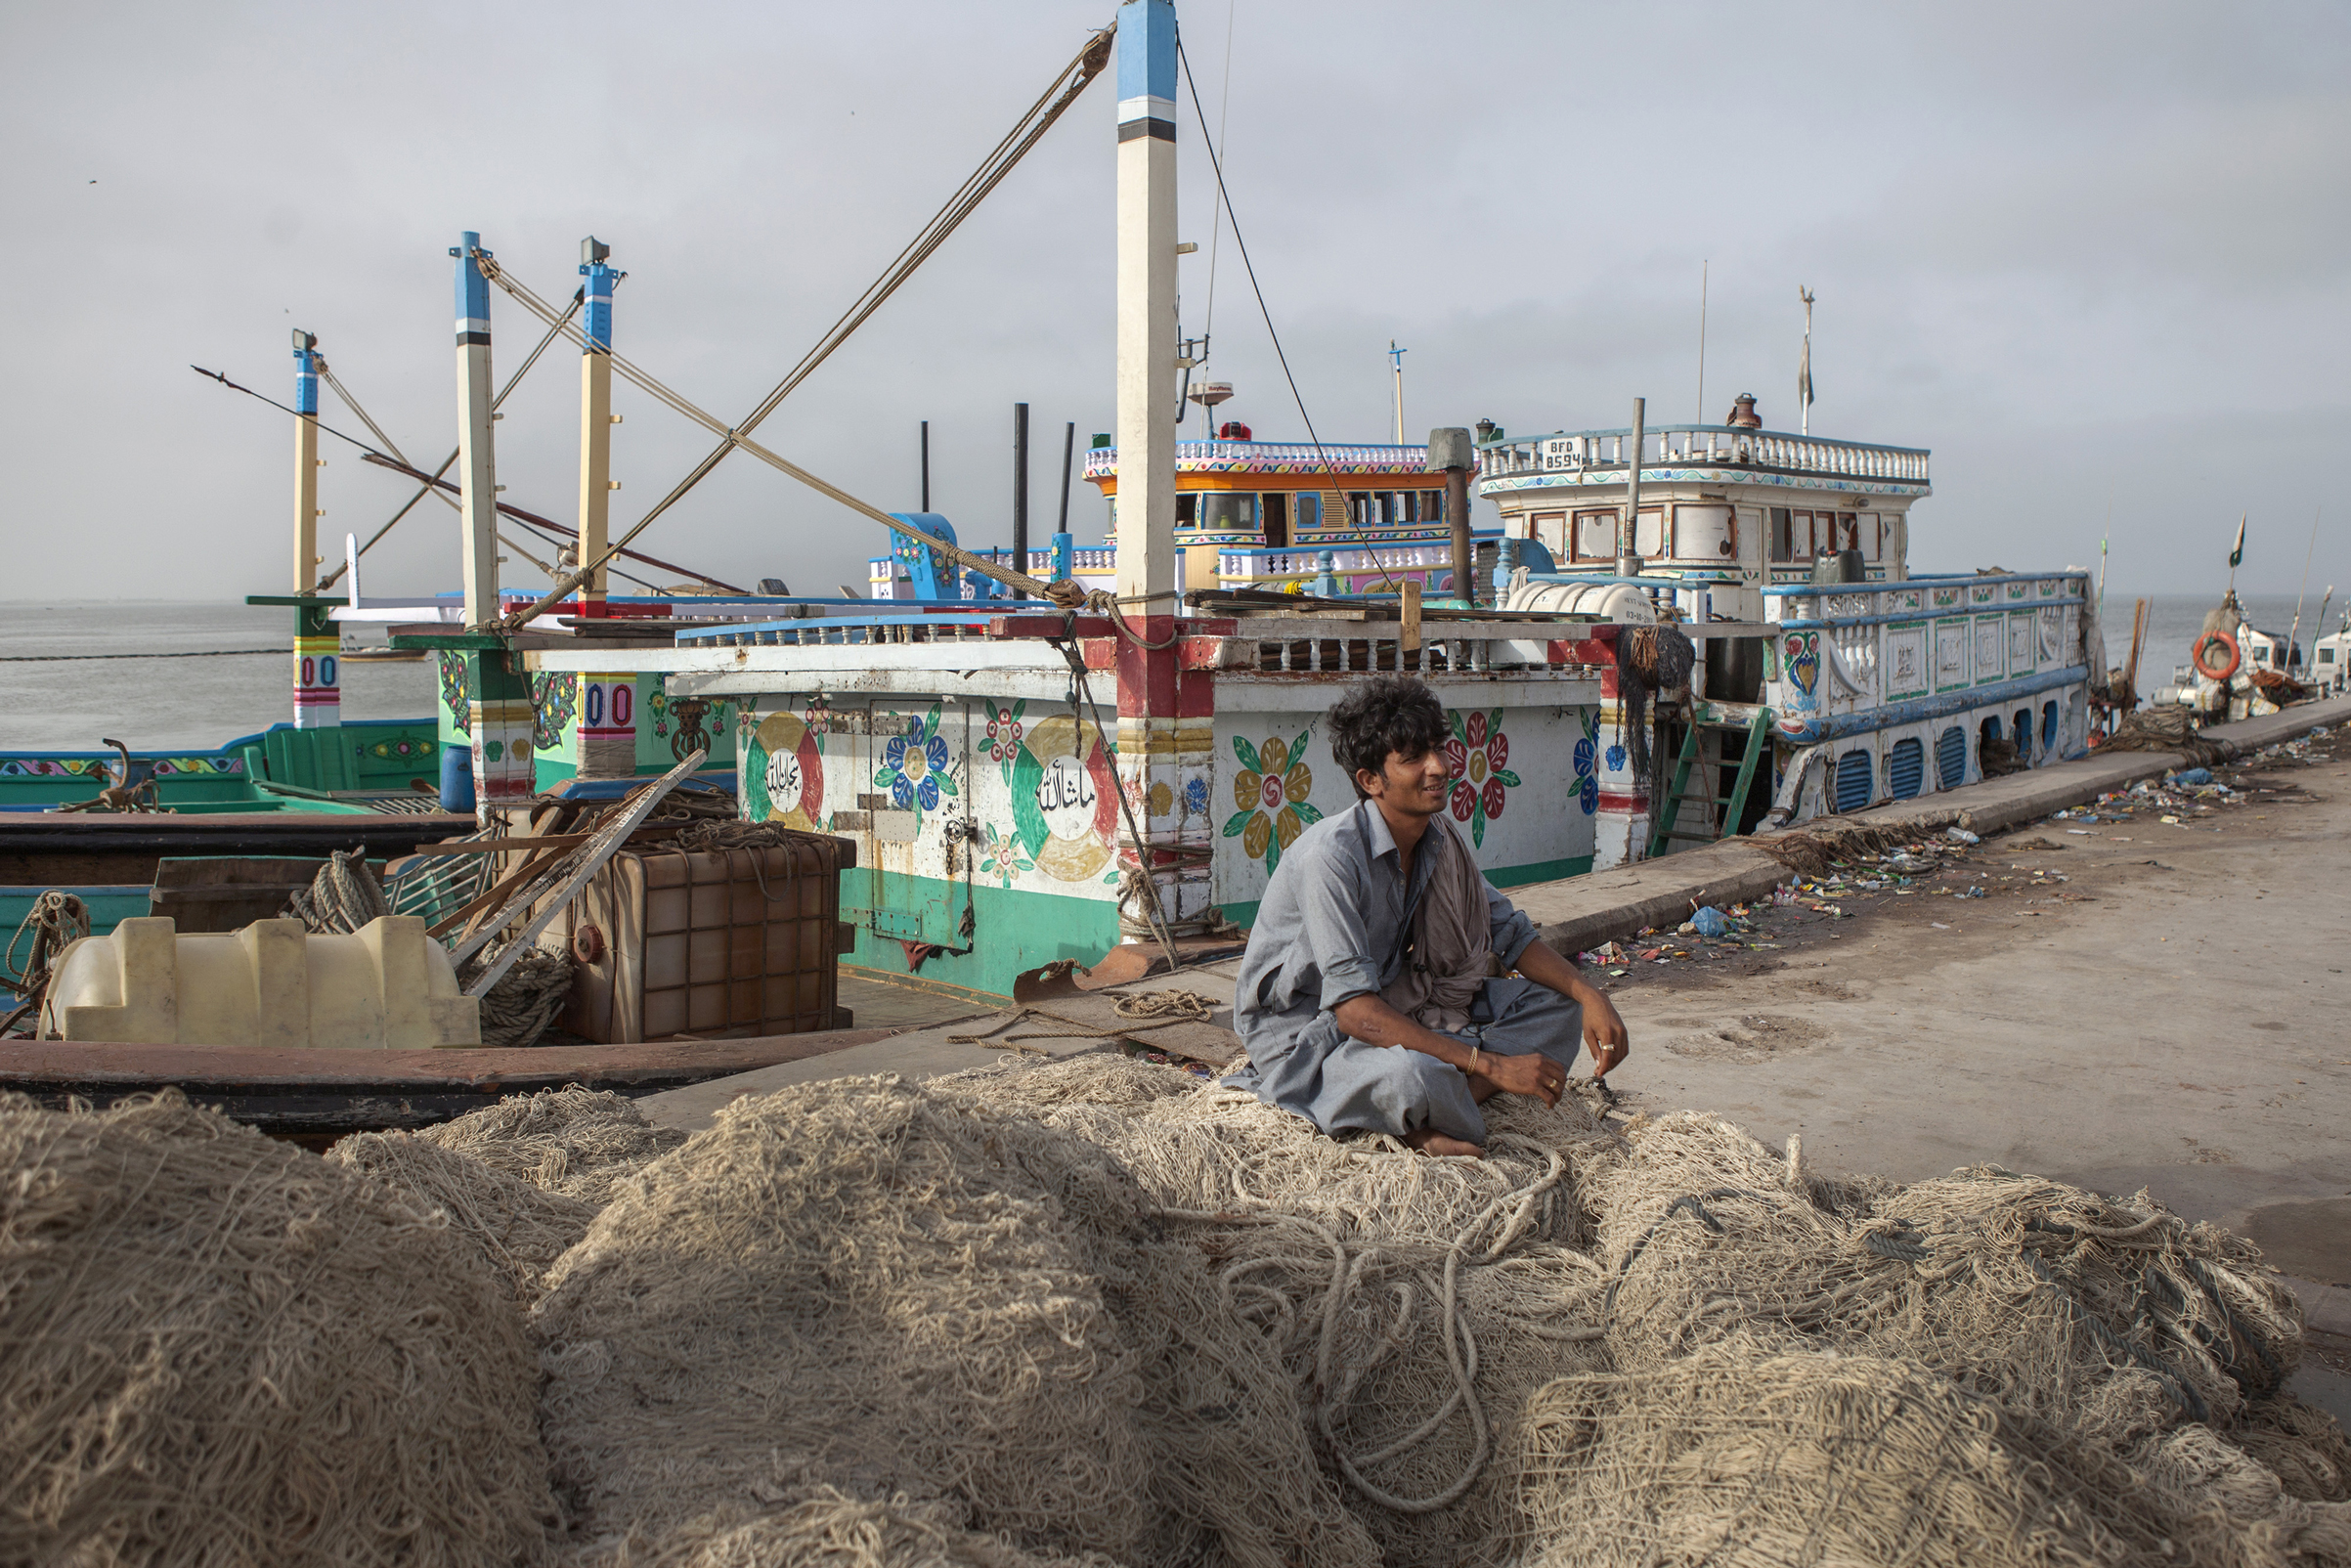 A fisherman sits on a pile of nets at a harbor in Gwadar, Balochistan, Pakistan, on Aug. 2, 2016. Gwadar is the cornerstone of China's project to rebuild the ancient trading route that connects China to the Arabian Sea, slicing through the Himalayas and crossing deserts and disputed territory to reach this ancient fishing port, about 500 miles by boat from Dubai.